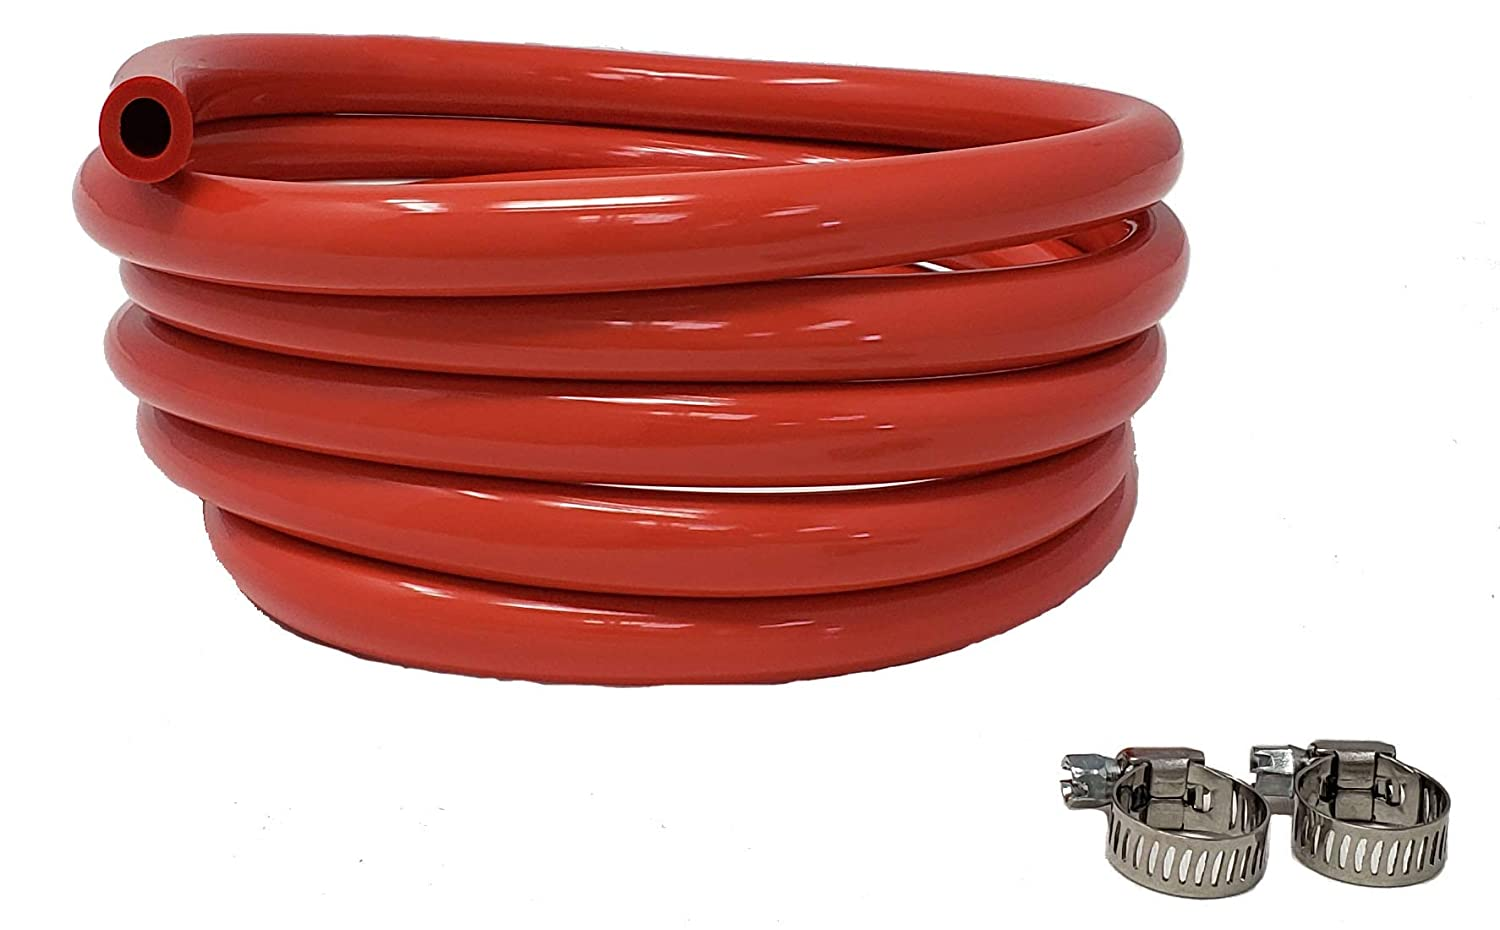 "Sealproof Red 5/16-Inch ID, 9/16-Inch OD Tubing, 10 FT, CO² Gas Line with 2 Worm Gear Hose Clamps, for Homebrewing, Kegerator, Draft Systems, Beer Air Hose, 1/4"" Wall Thickness - Made in USA"